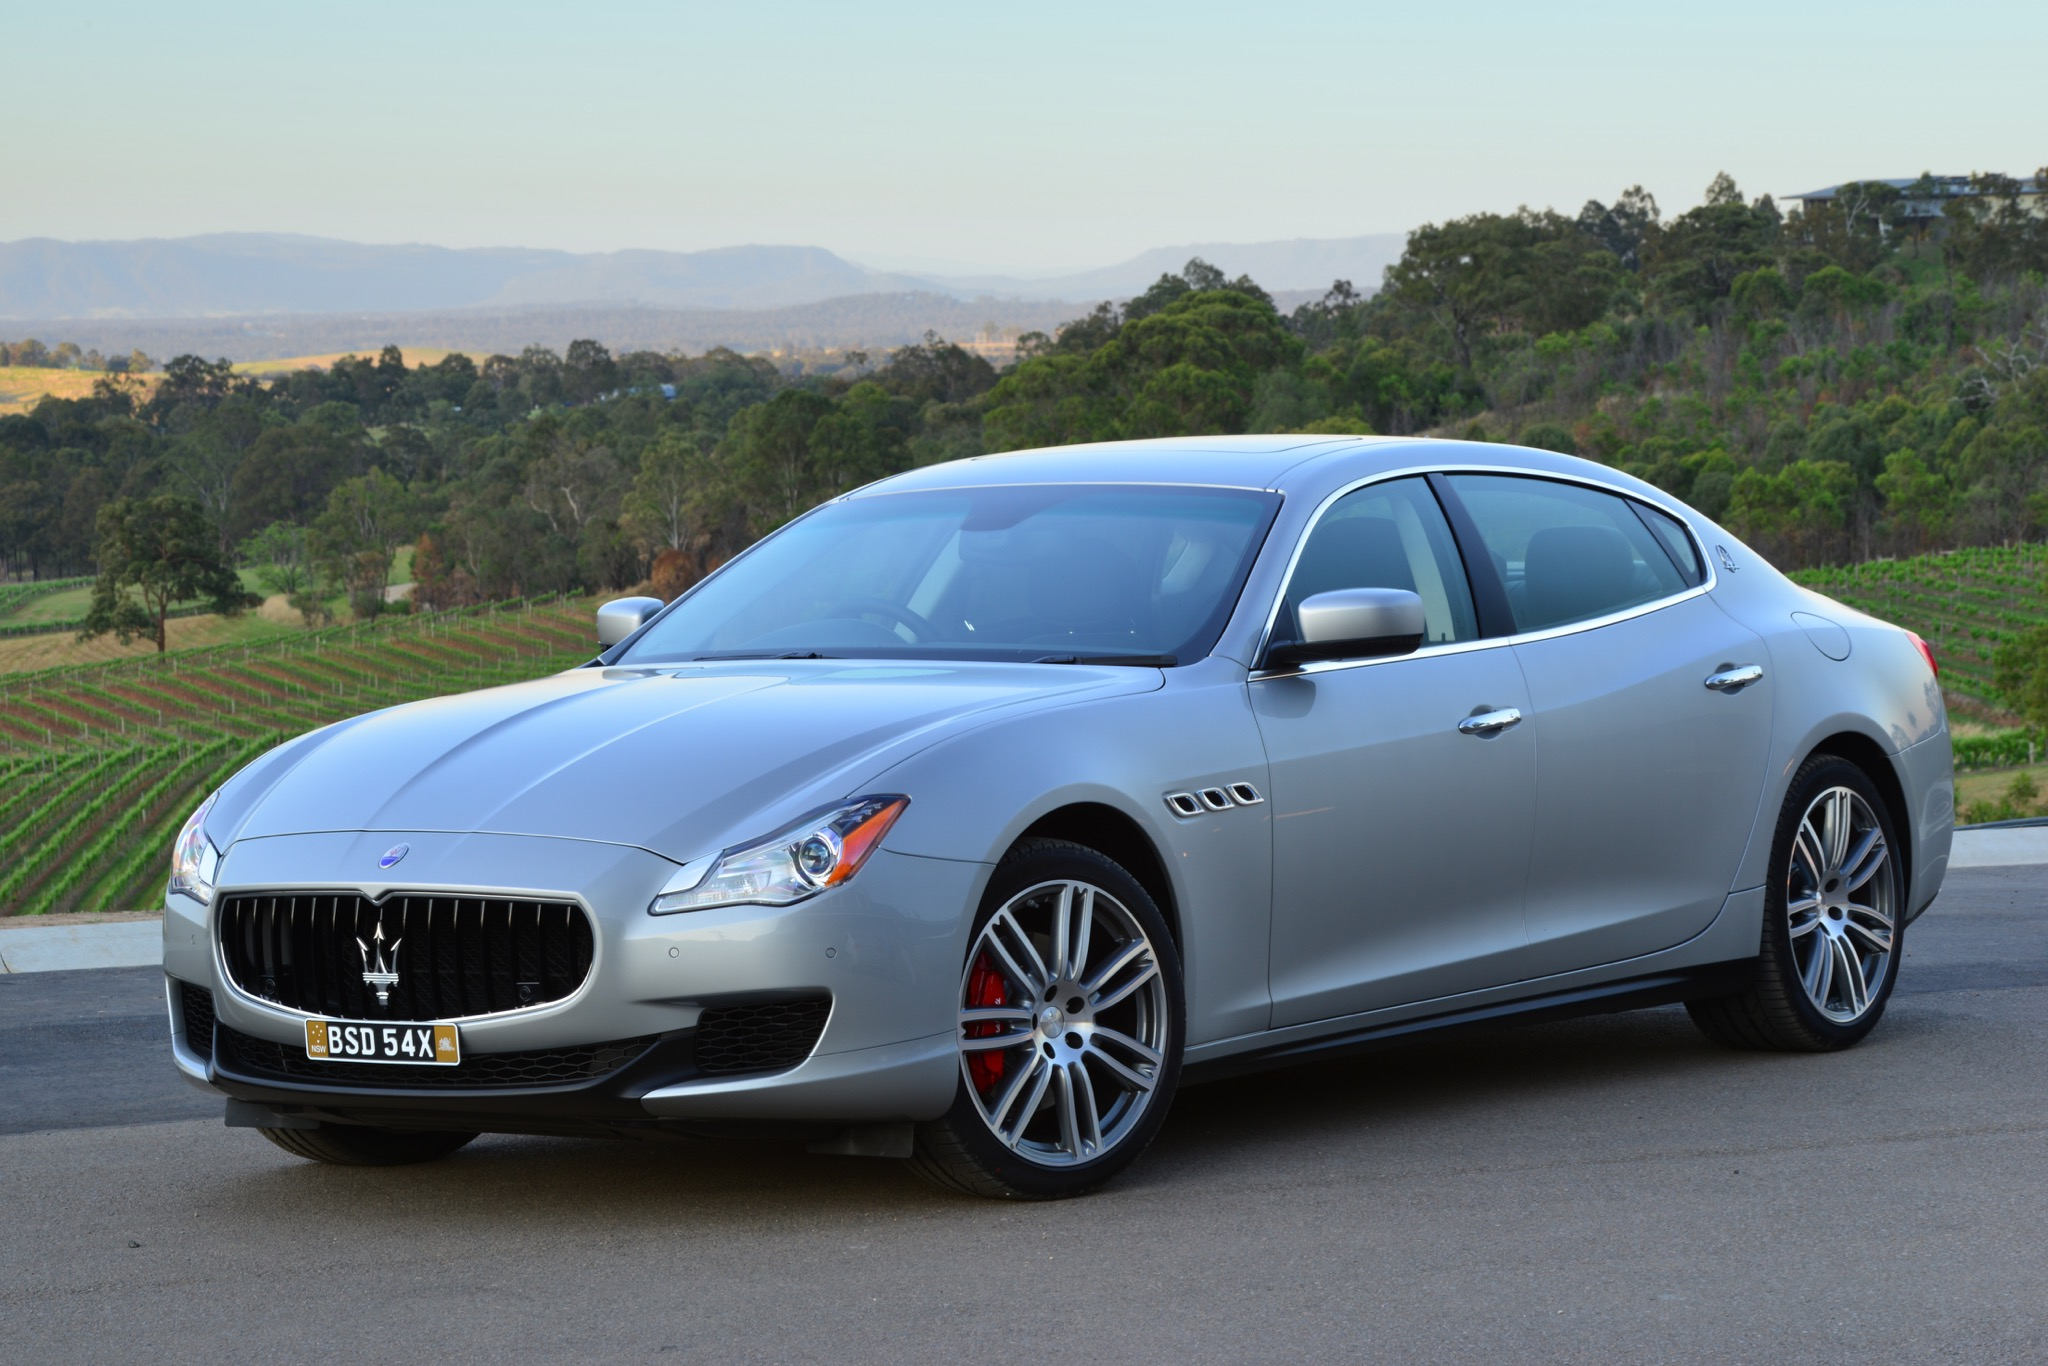 New 2016 Maserati Quattroporte Review  CarAdvice